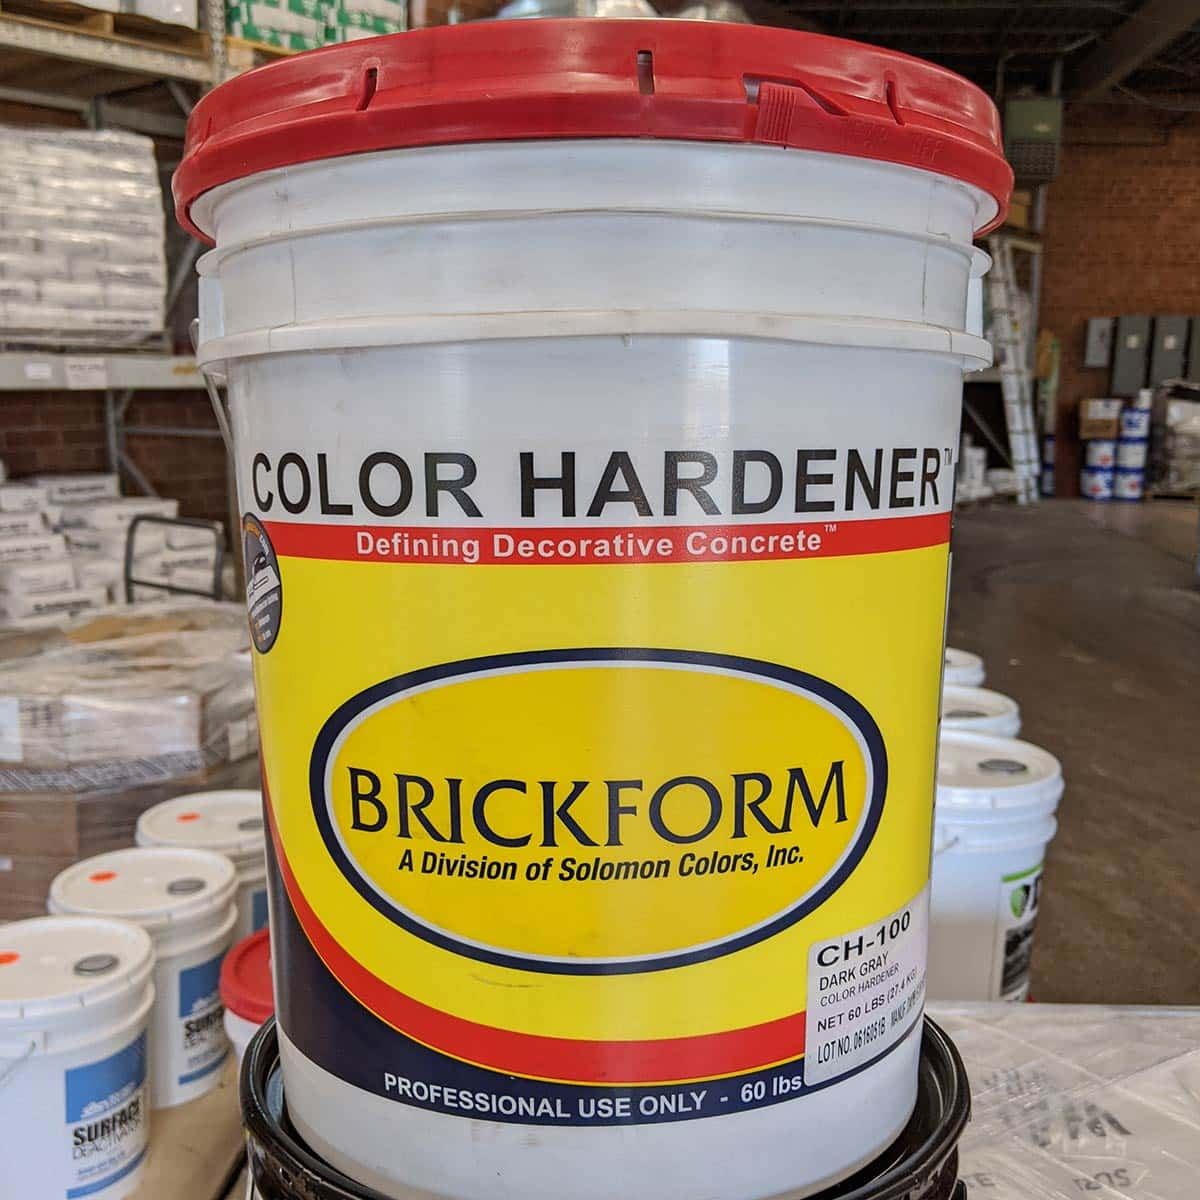 Concrete Color Hardener - by Brickform 42 Colors